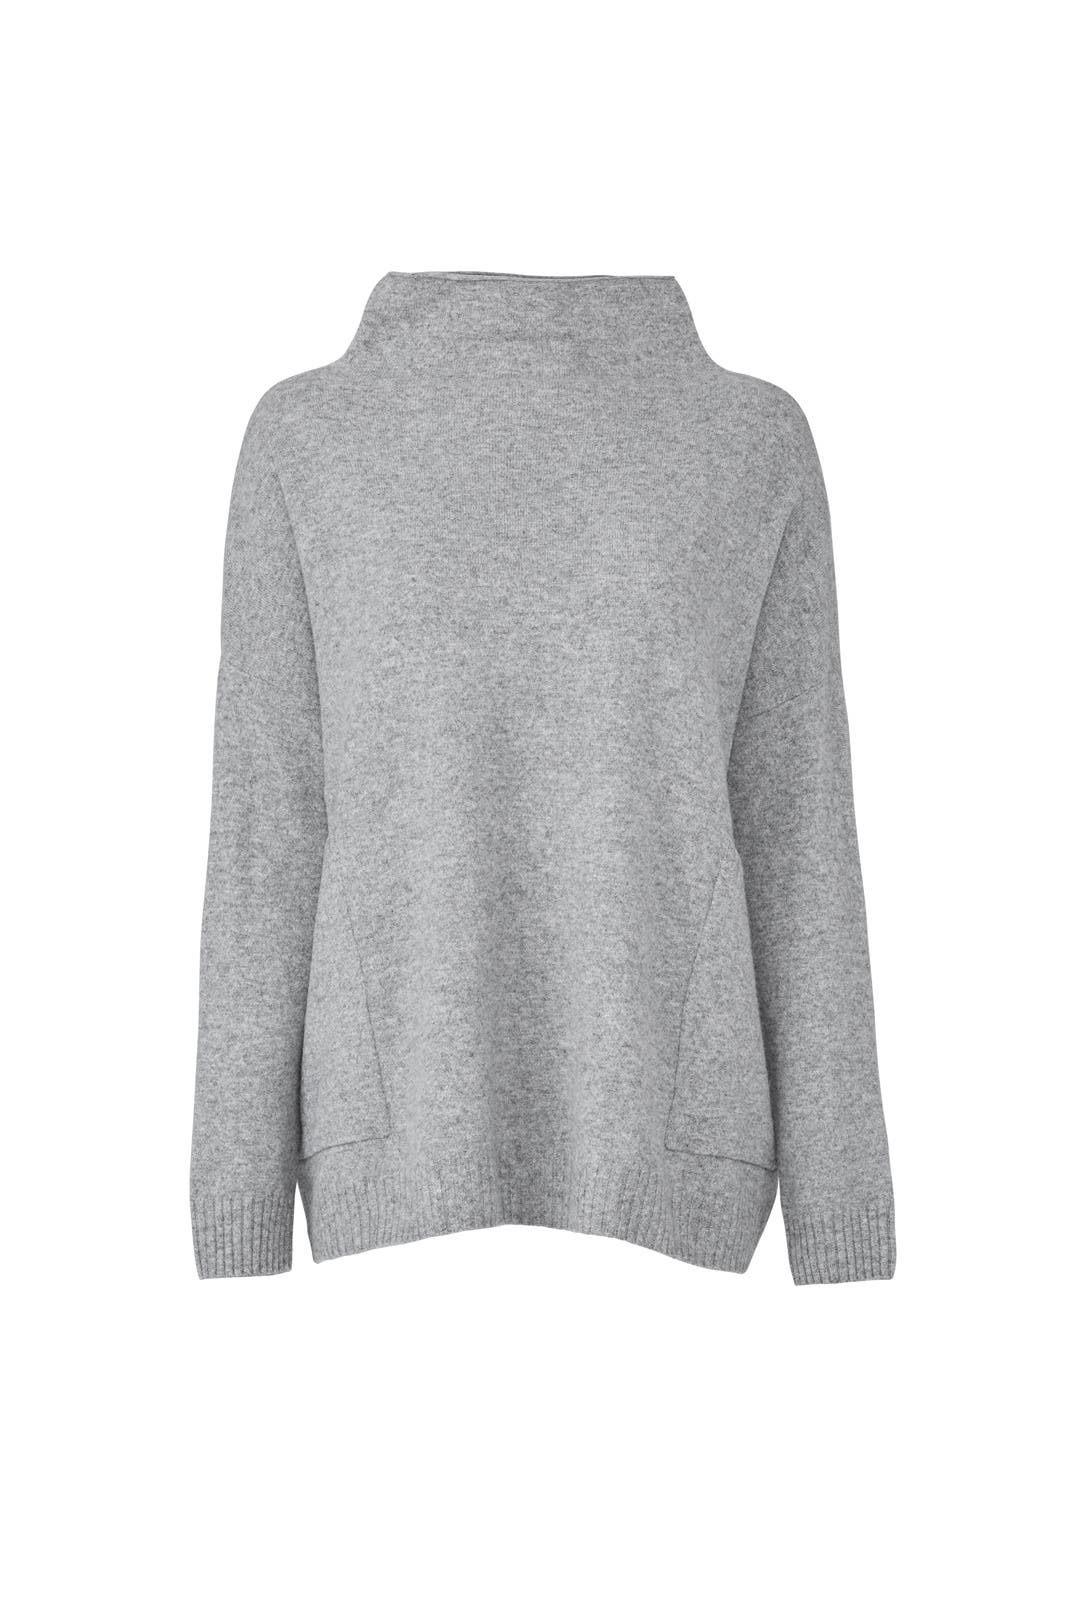 Grey Big Easy Sweater by BROWN ALLAN for $30 | Rent the Runway